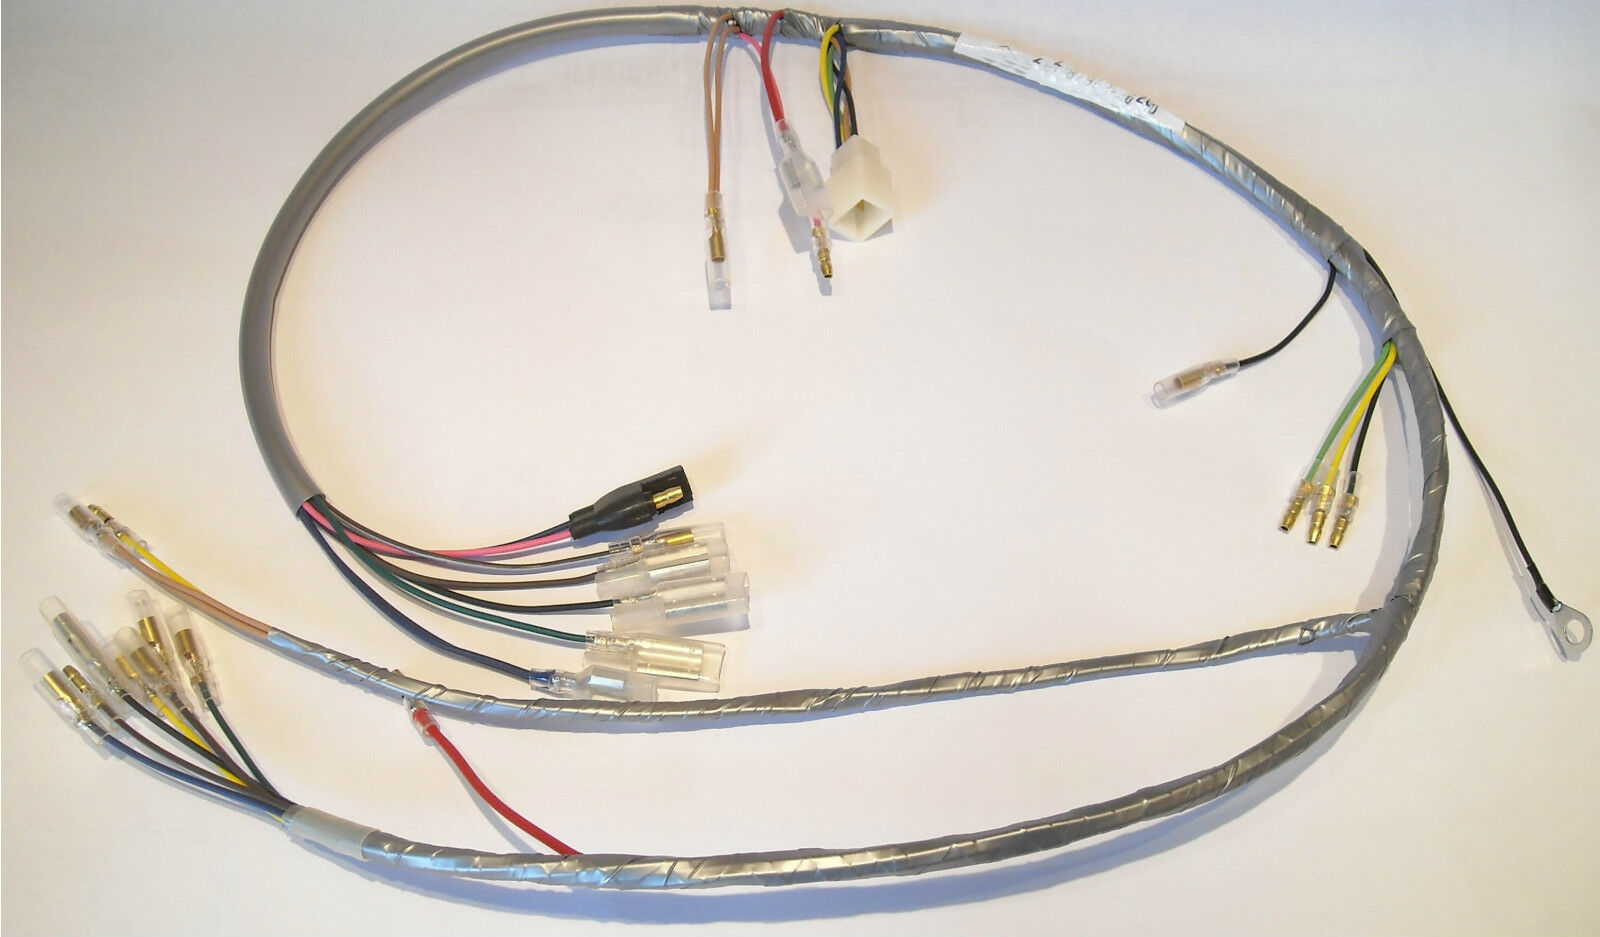 1968 Yamaha 68 Dt1 250 Enduro Wiring Harness Wire Loom Nos Vintage For A 73 Ironhead 1 Of 6 See More